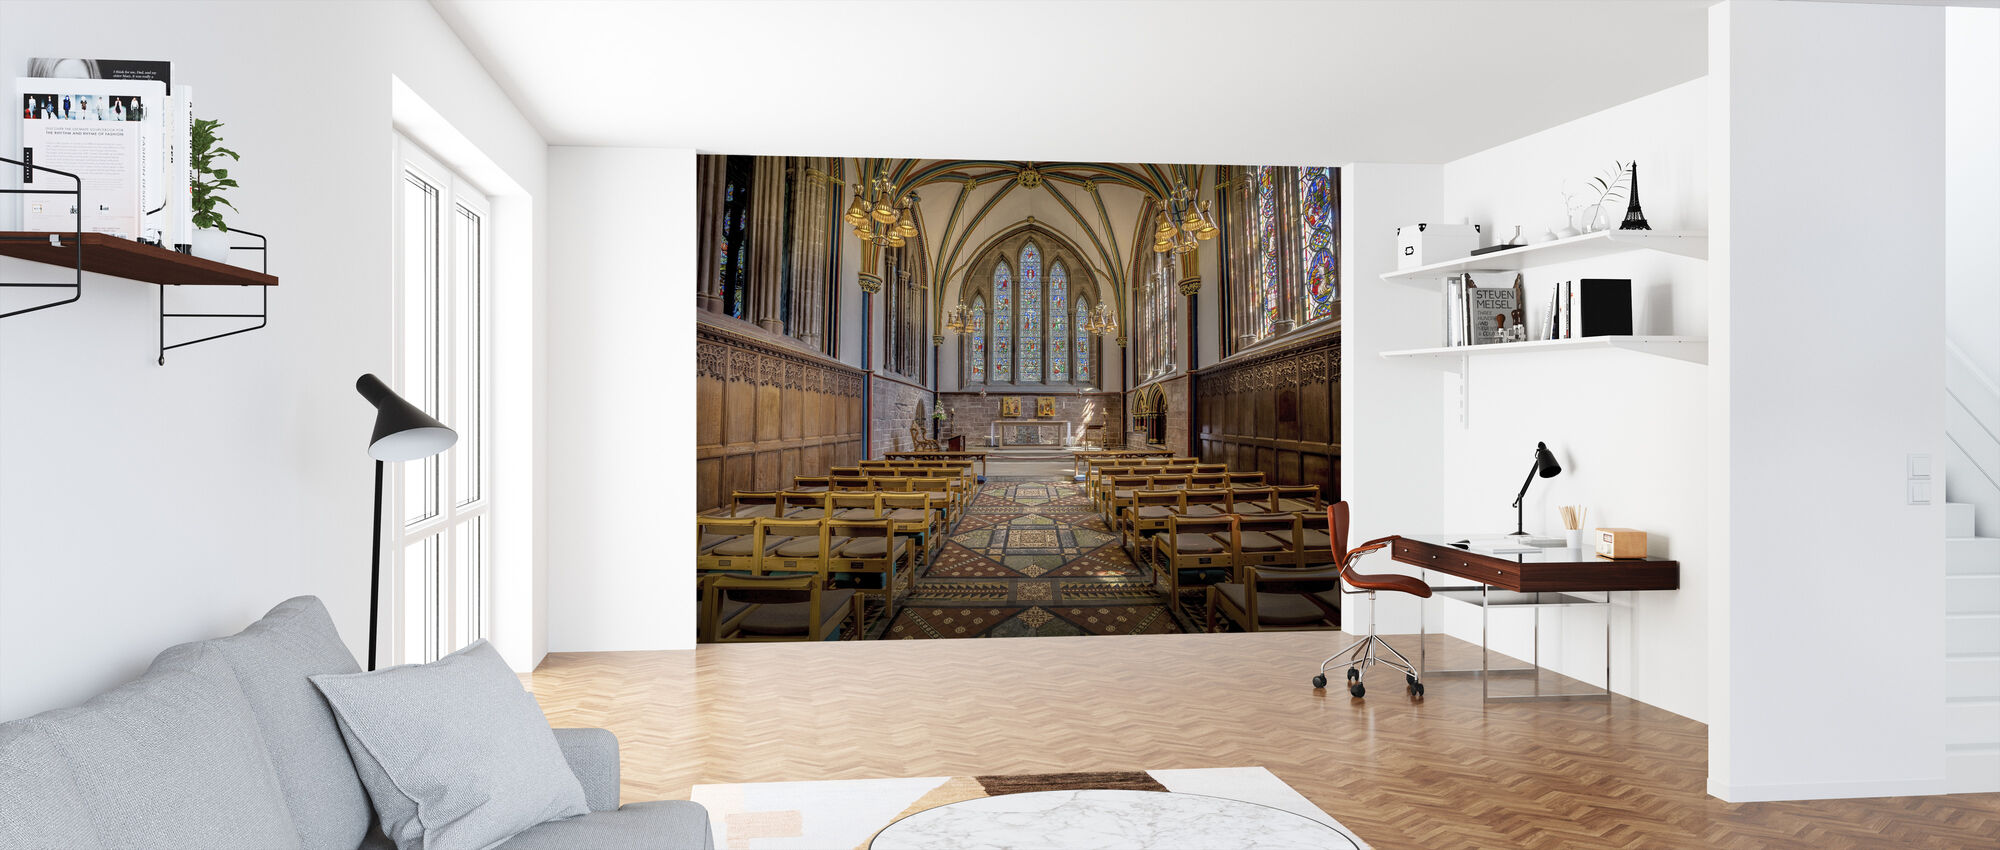 Lady Chapel - Wallpaper - Office